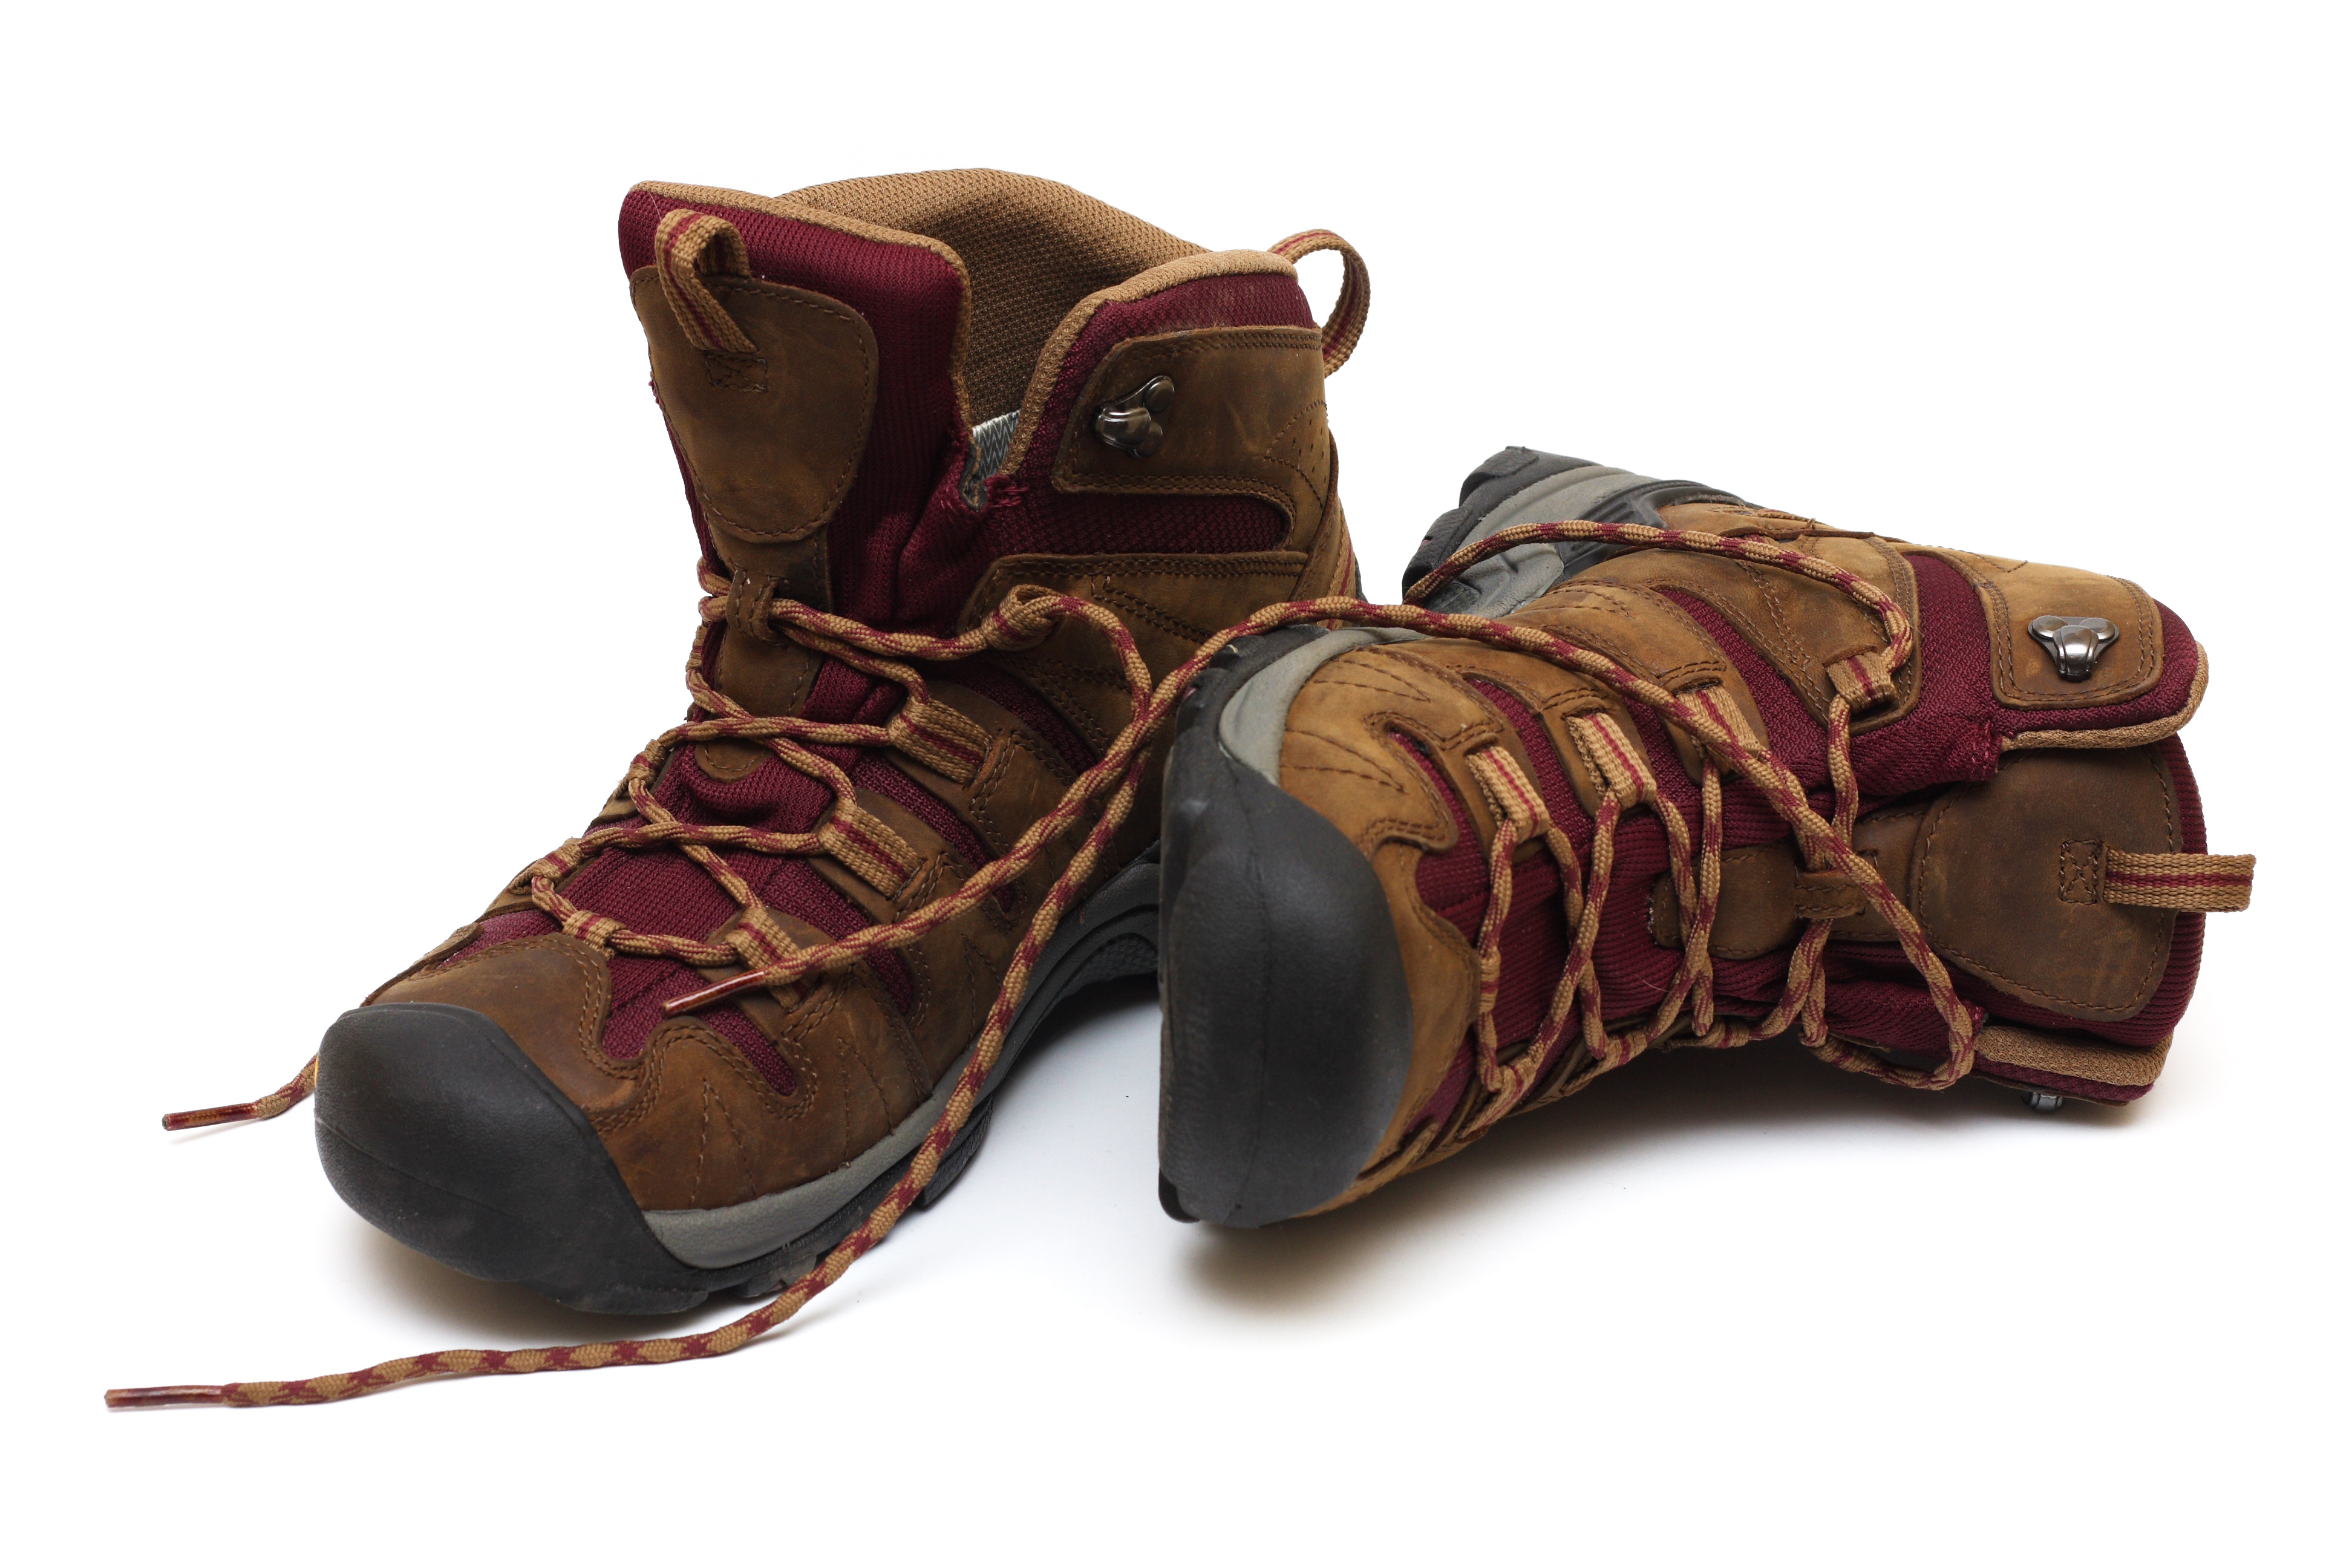 brands comfortable most hiking comforter image boots everything shop by tan boot rossi australian endura